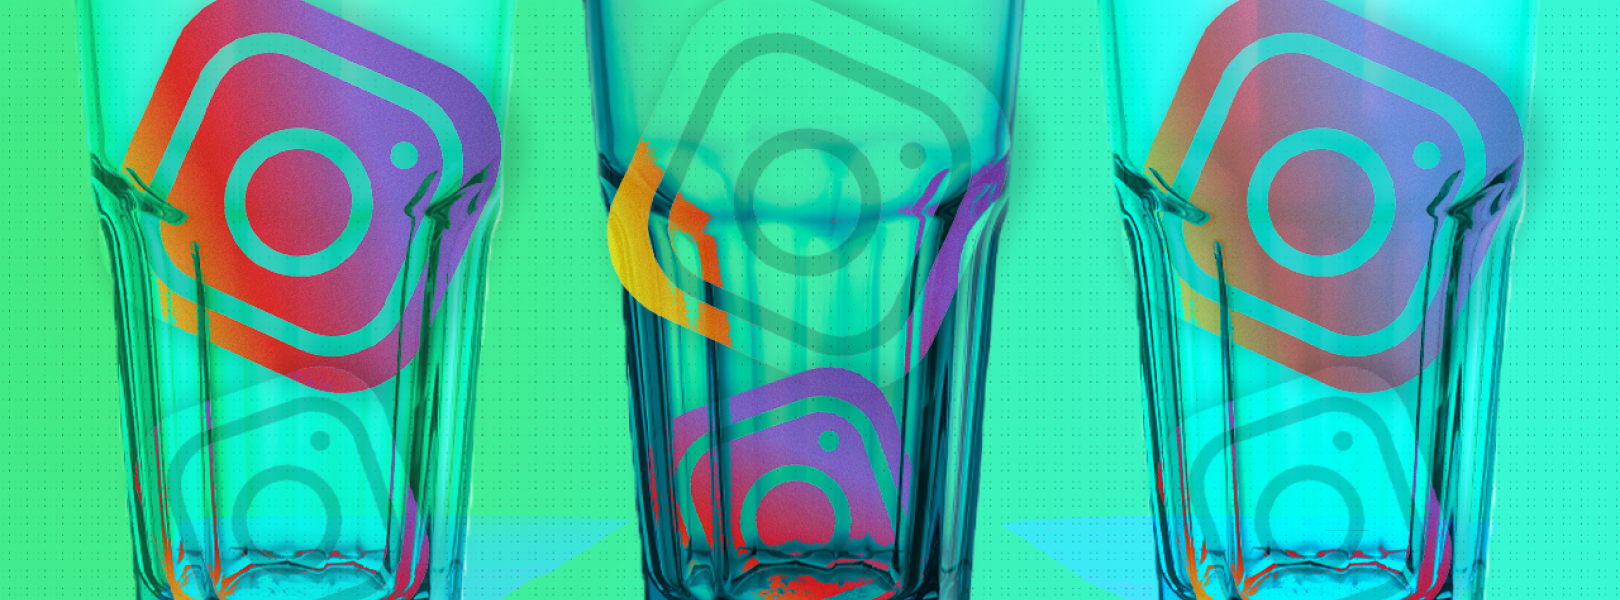 A green background with three cups holding the Instagram logo in them